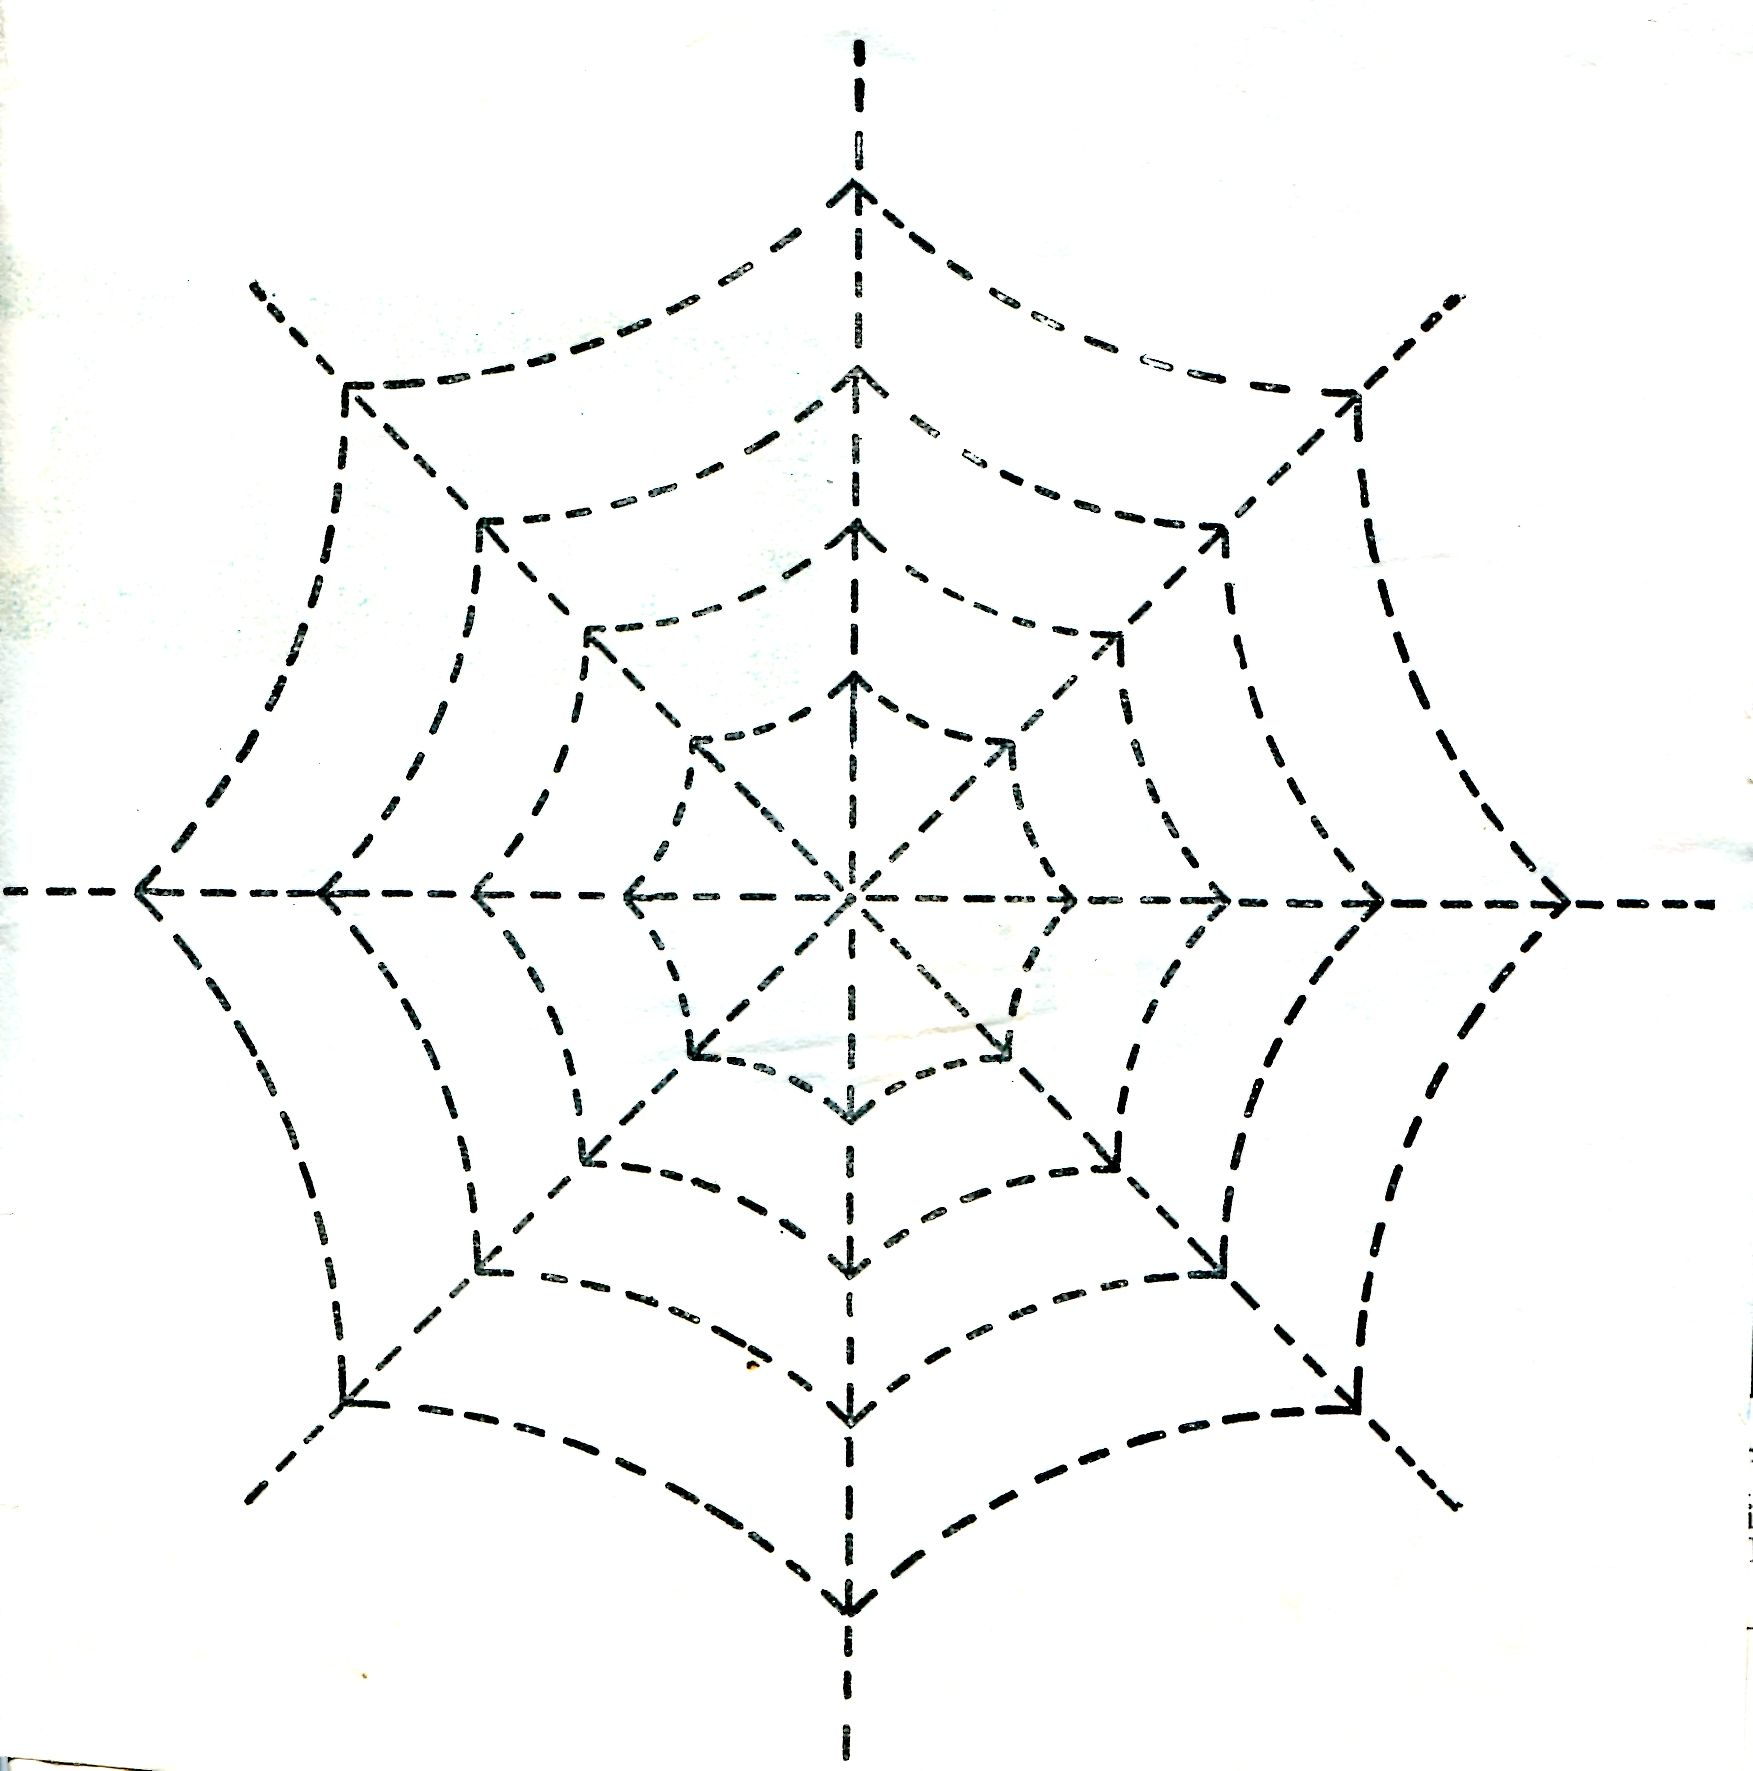 how to make a spider web out of glue